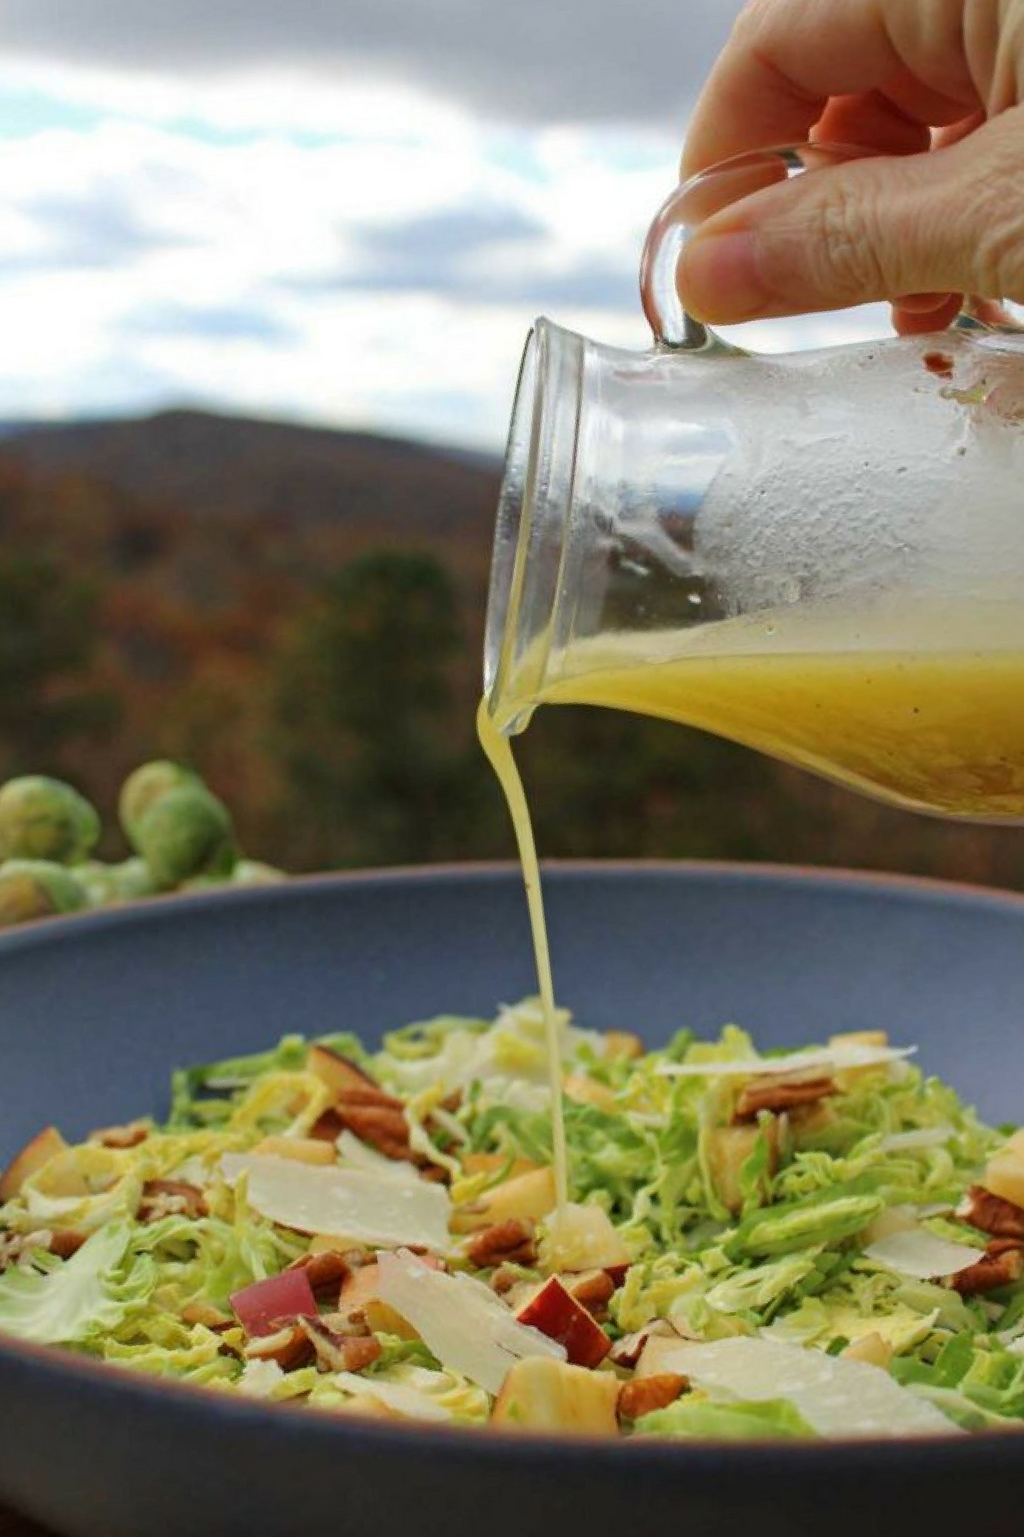 This apple pecan brussels sprout salad is for crunch lovers! Made with shredded brussels sprouts, apples, pecans, parmesan cheese and homemade dressing.